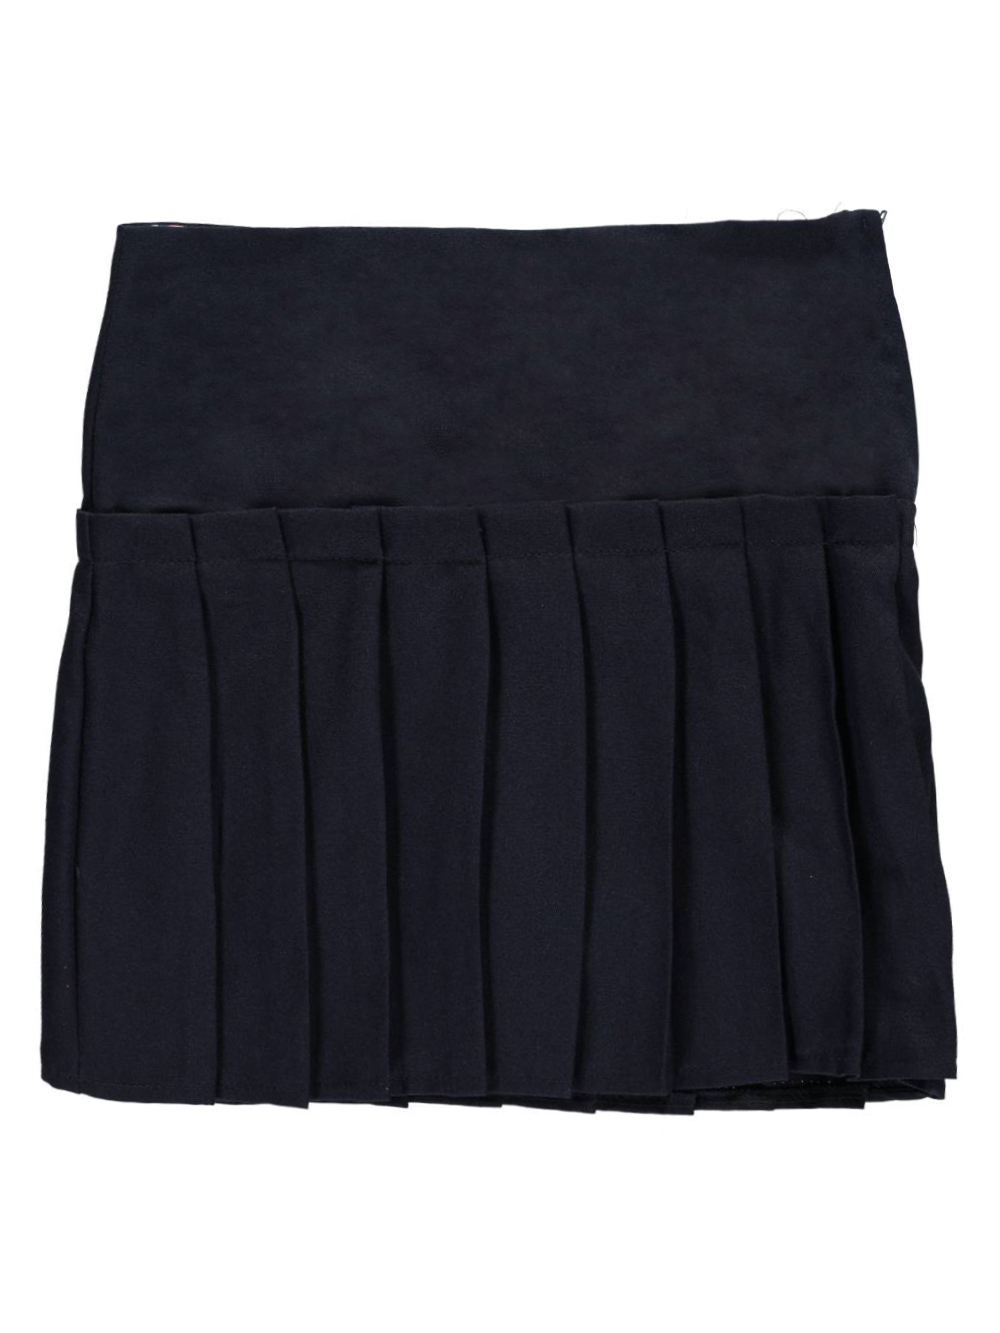 Image of Genuine Big Girls Drop Pleat Scooter Skirt Sizes 7  16